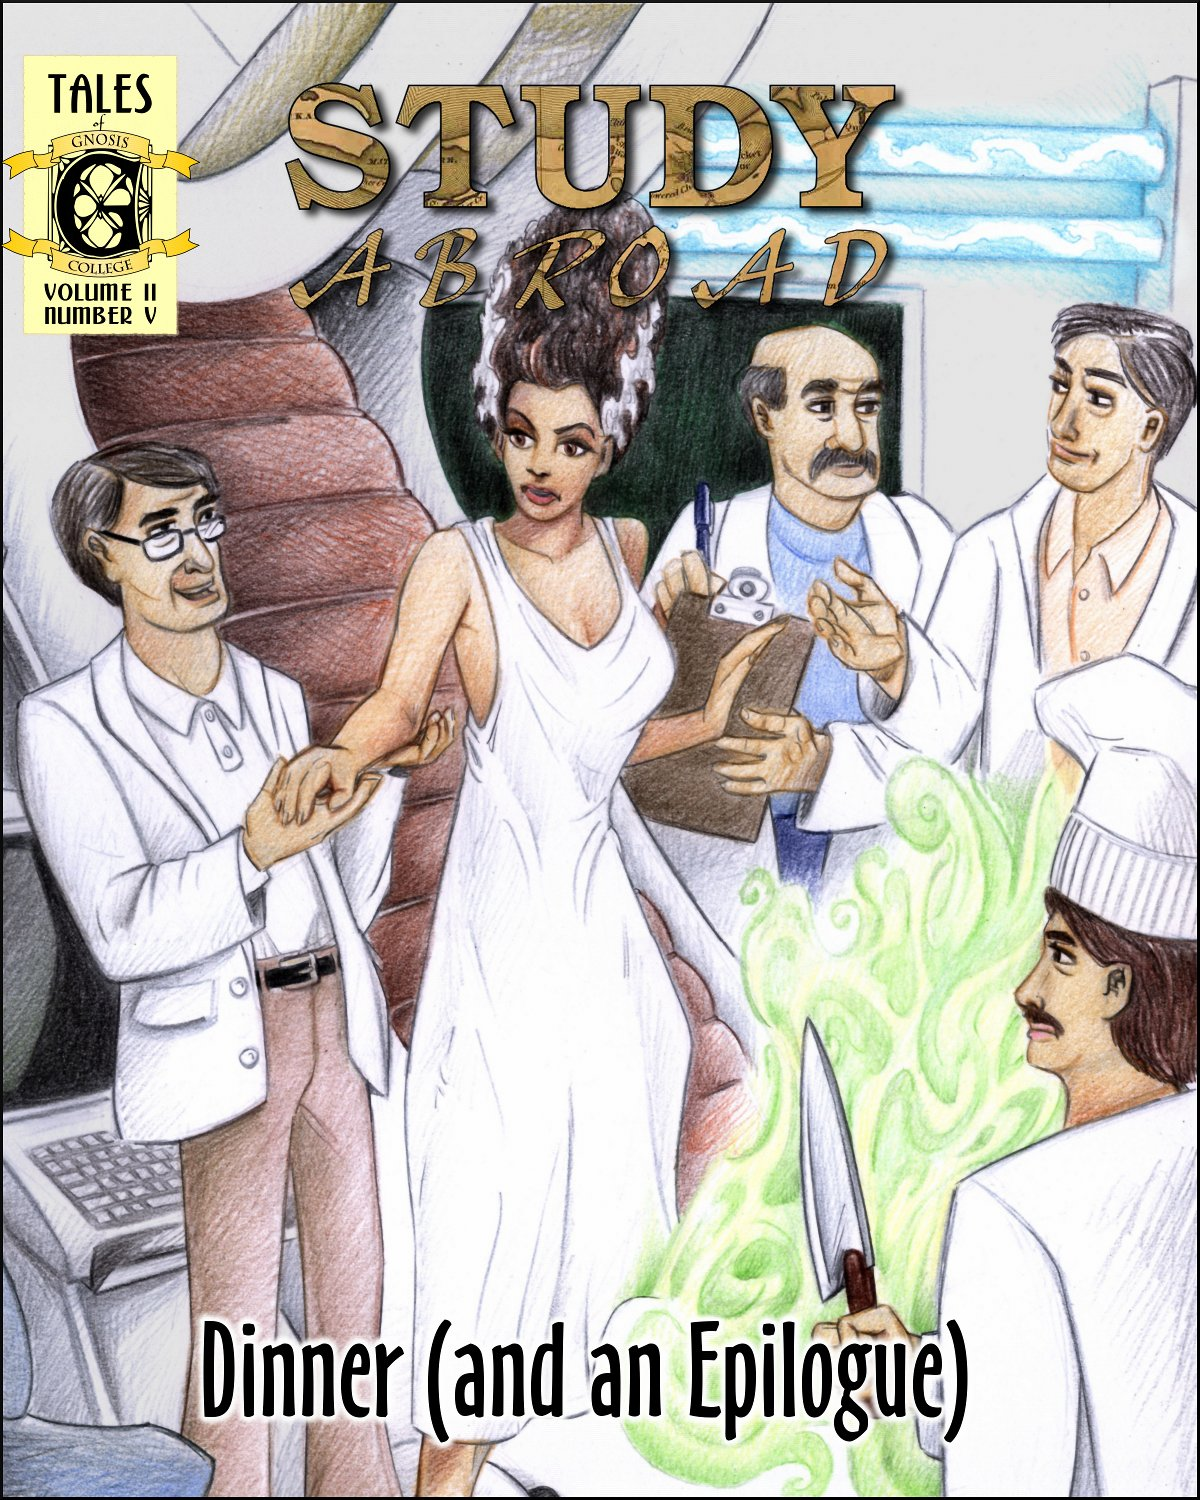 Iris Brockman depicted as the Bride of Frankenstein. What's that chef doing there?